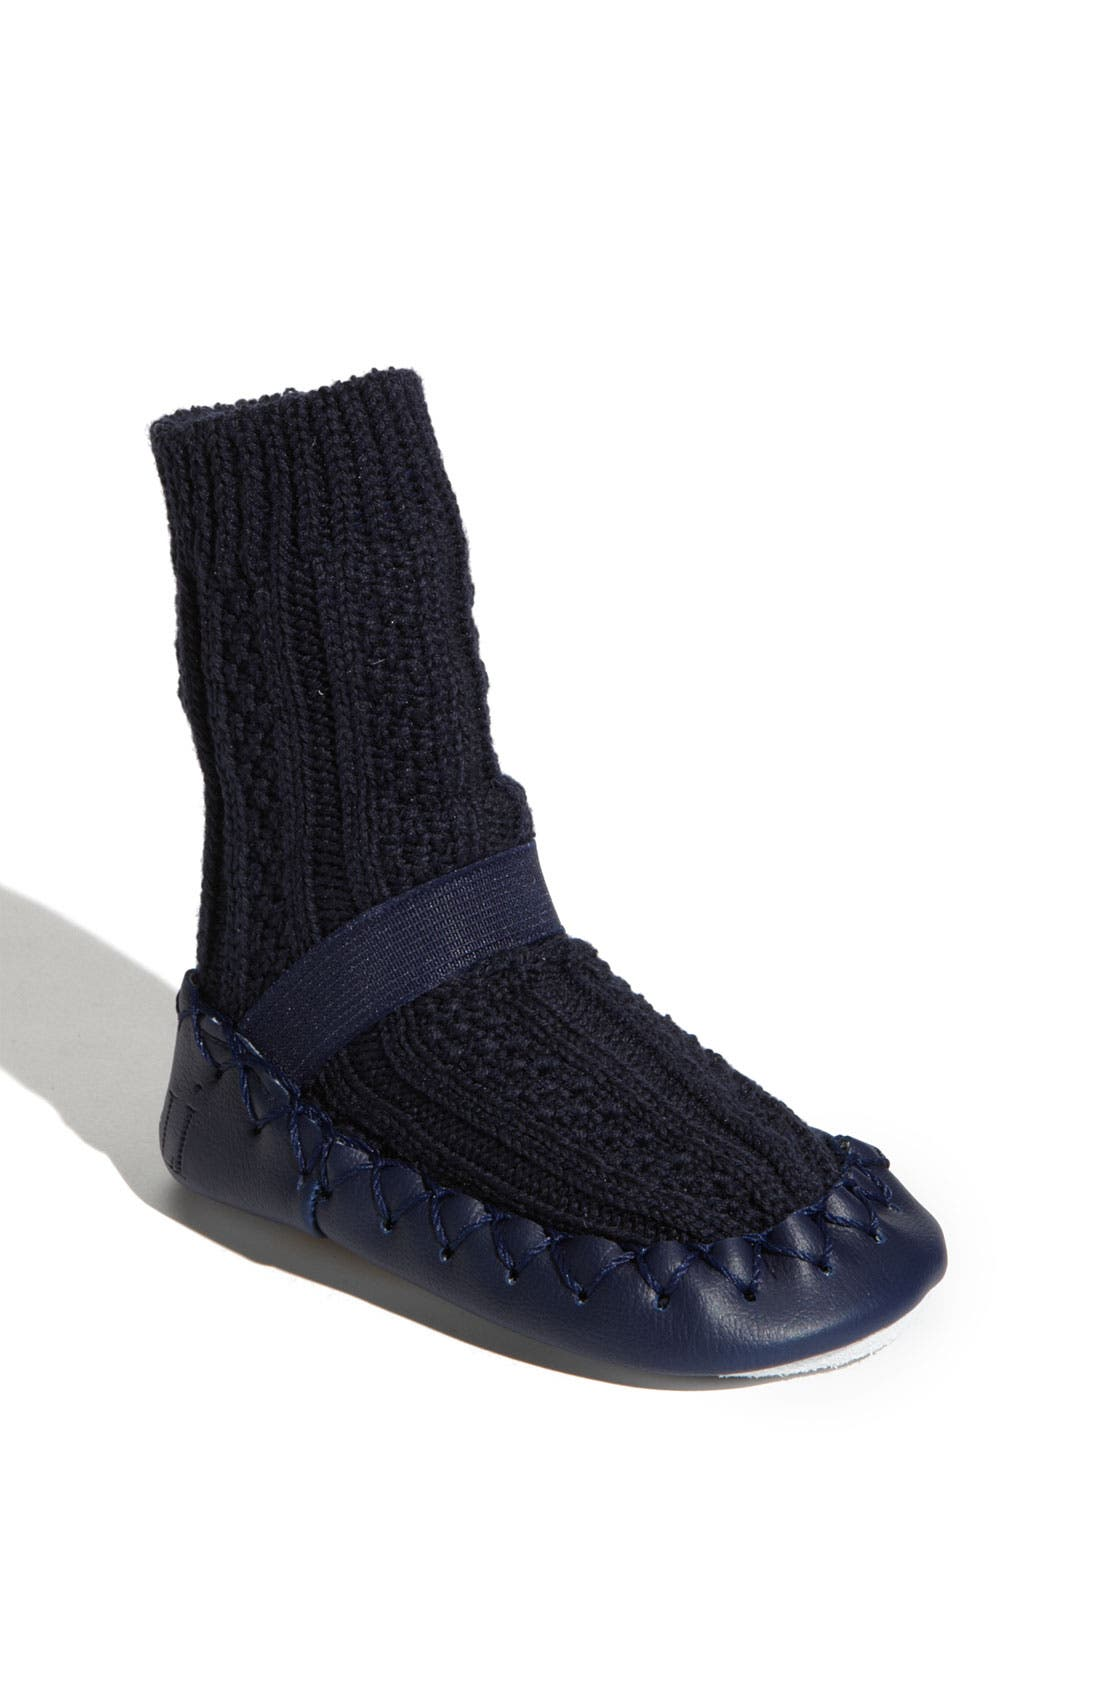 Alternate Image 1 Selected - Nowali Cable Knit Moccasins (Baby & Walker)